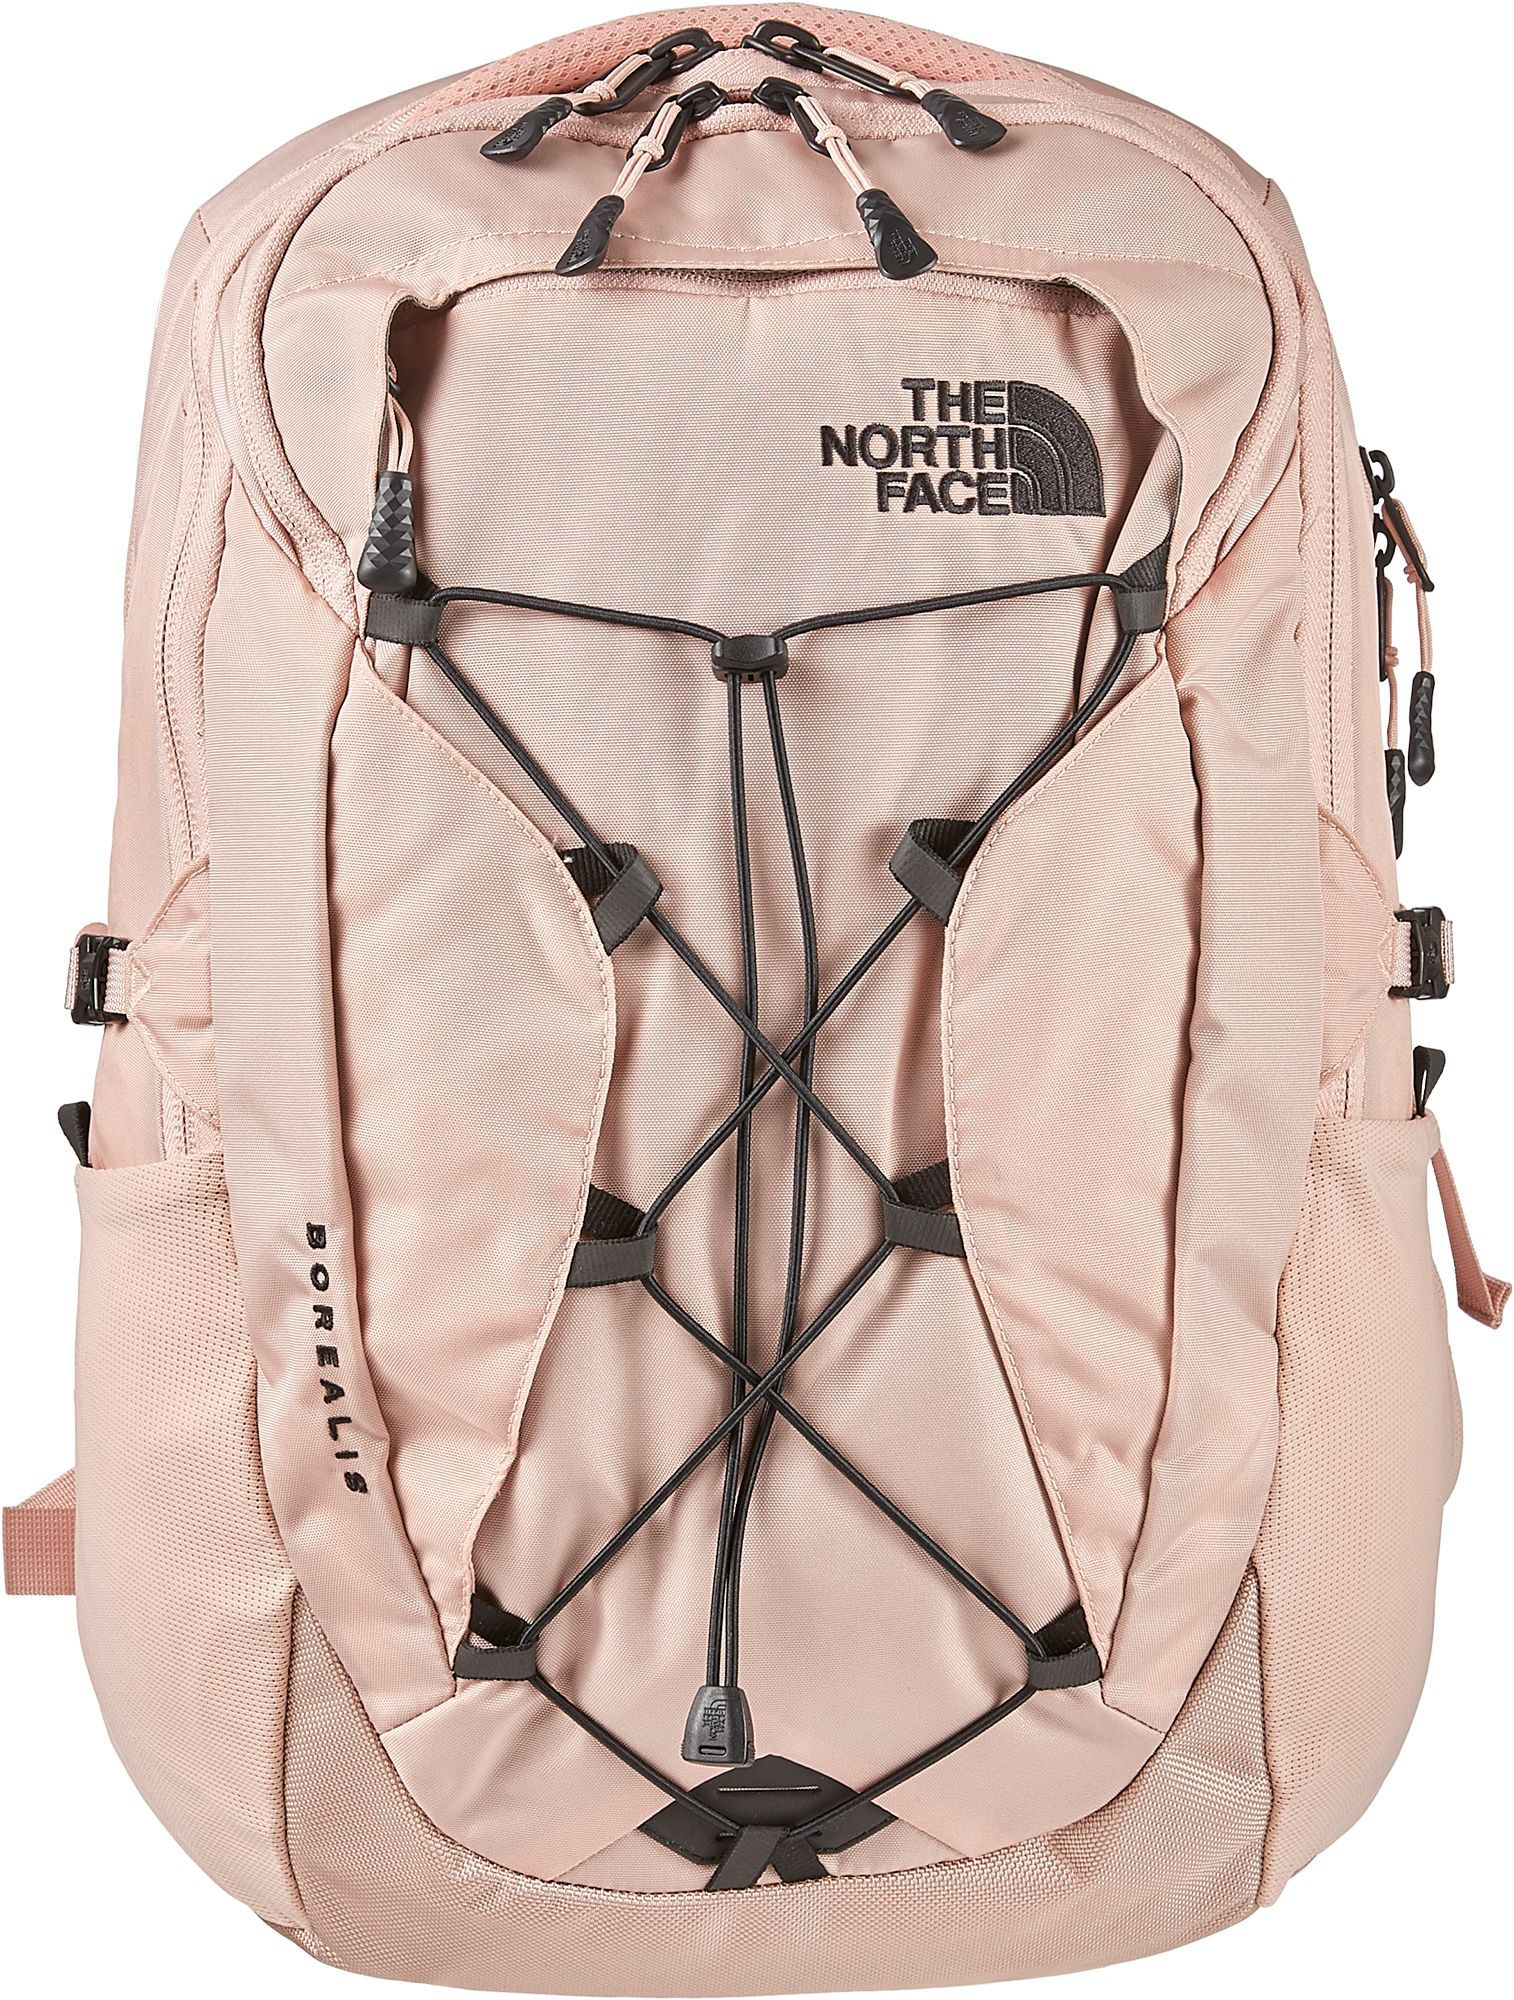 3ce4be7fa3e The North Face Women's Borealis Luxe Backpack, Gray in 2019 ...